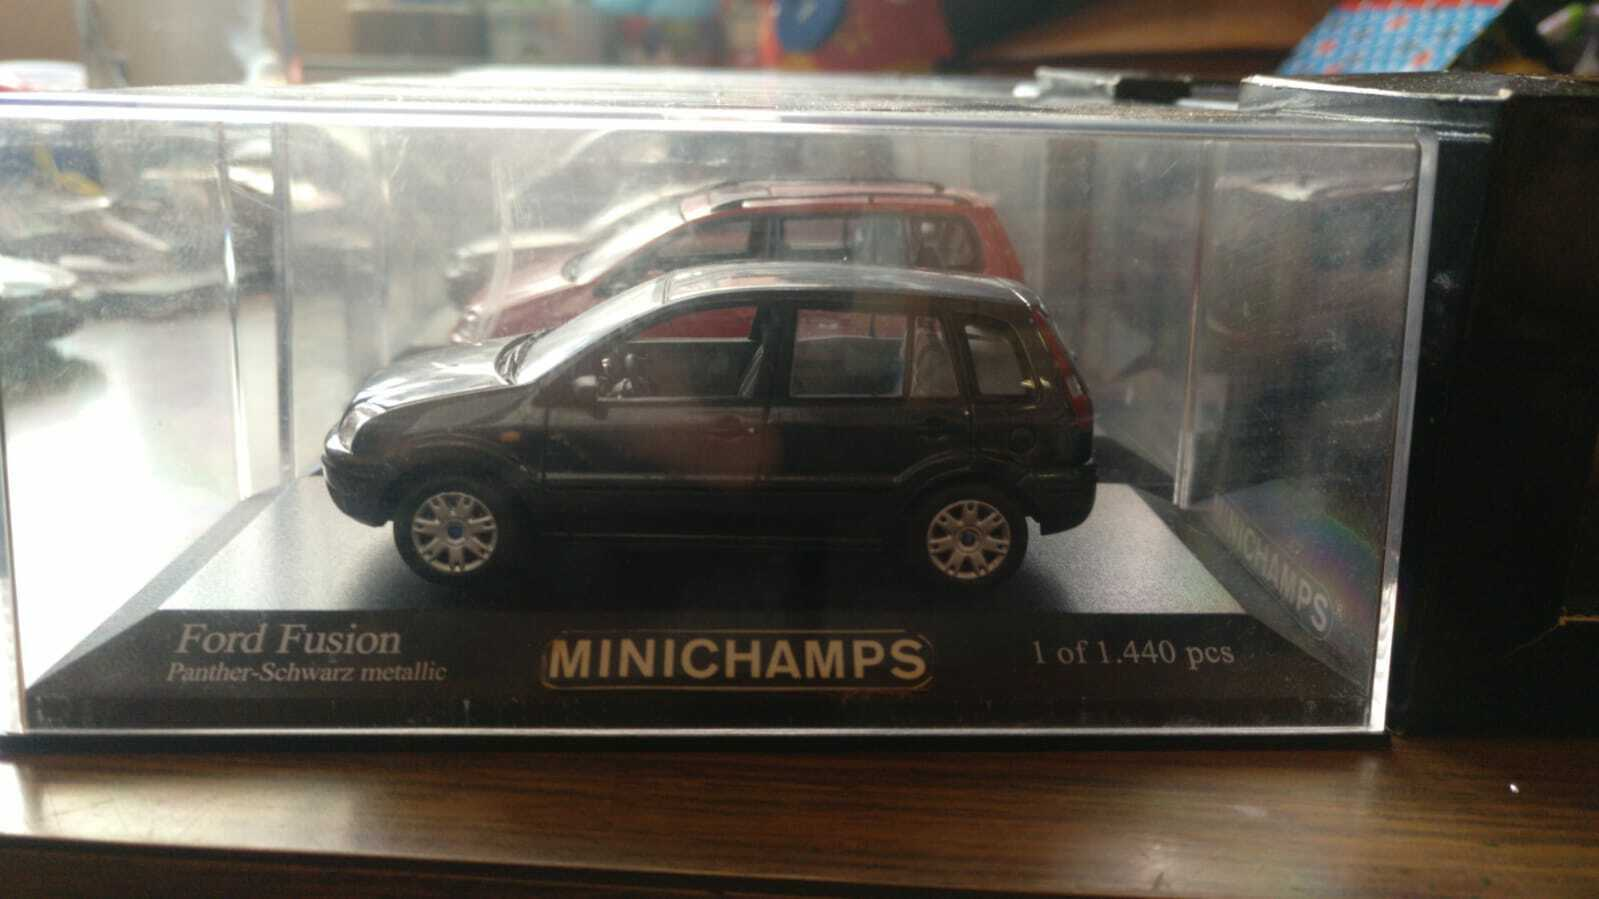 Ford Fusion 1 43 minichamps